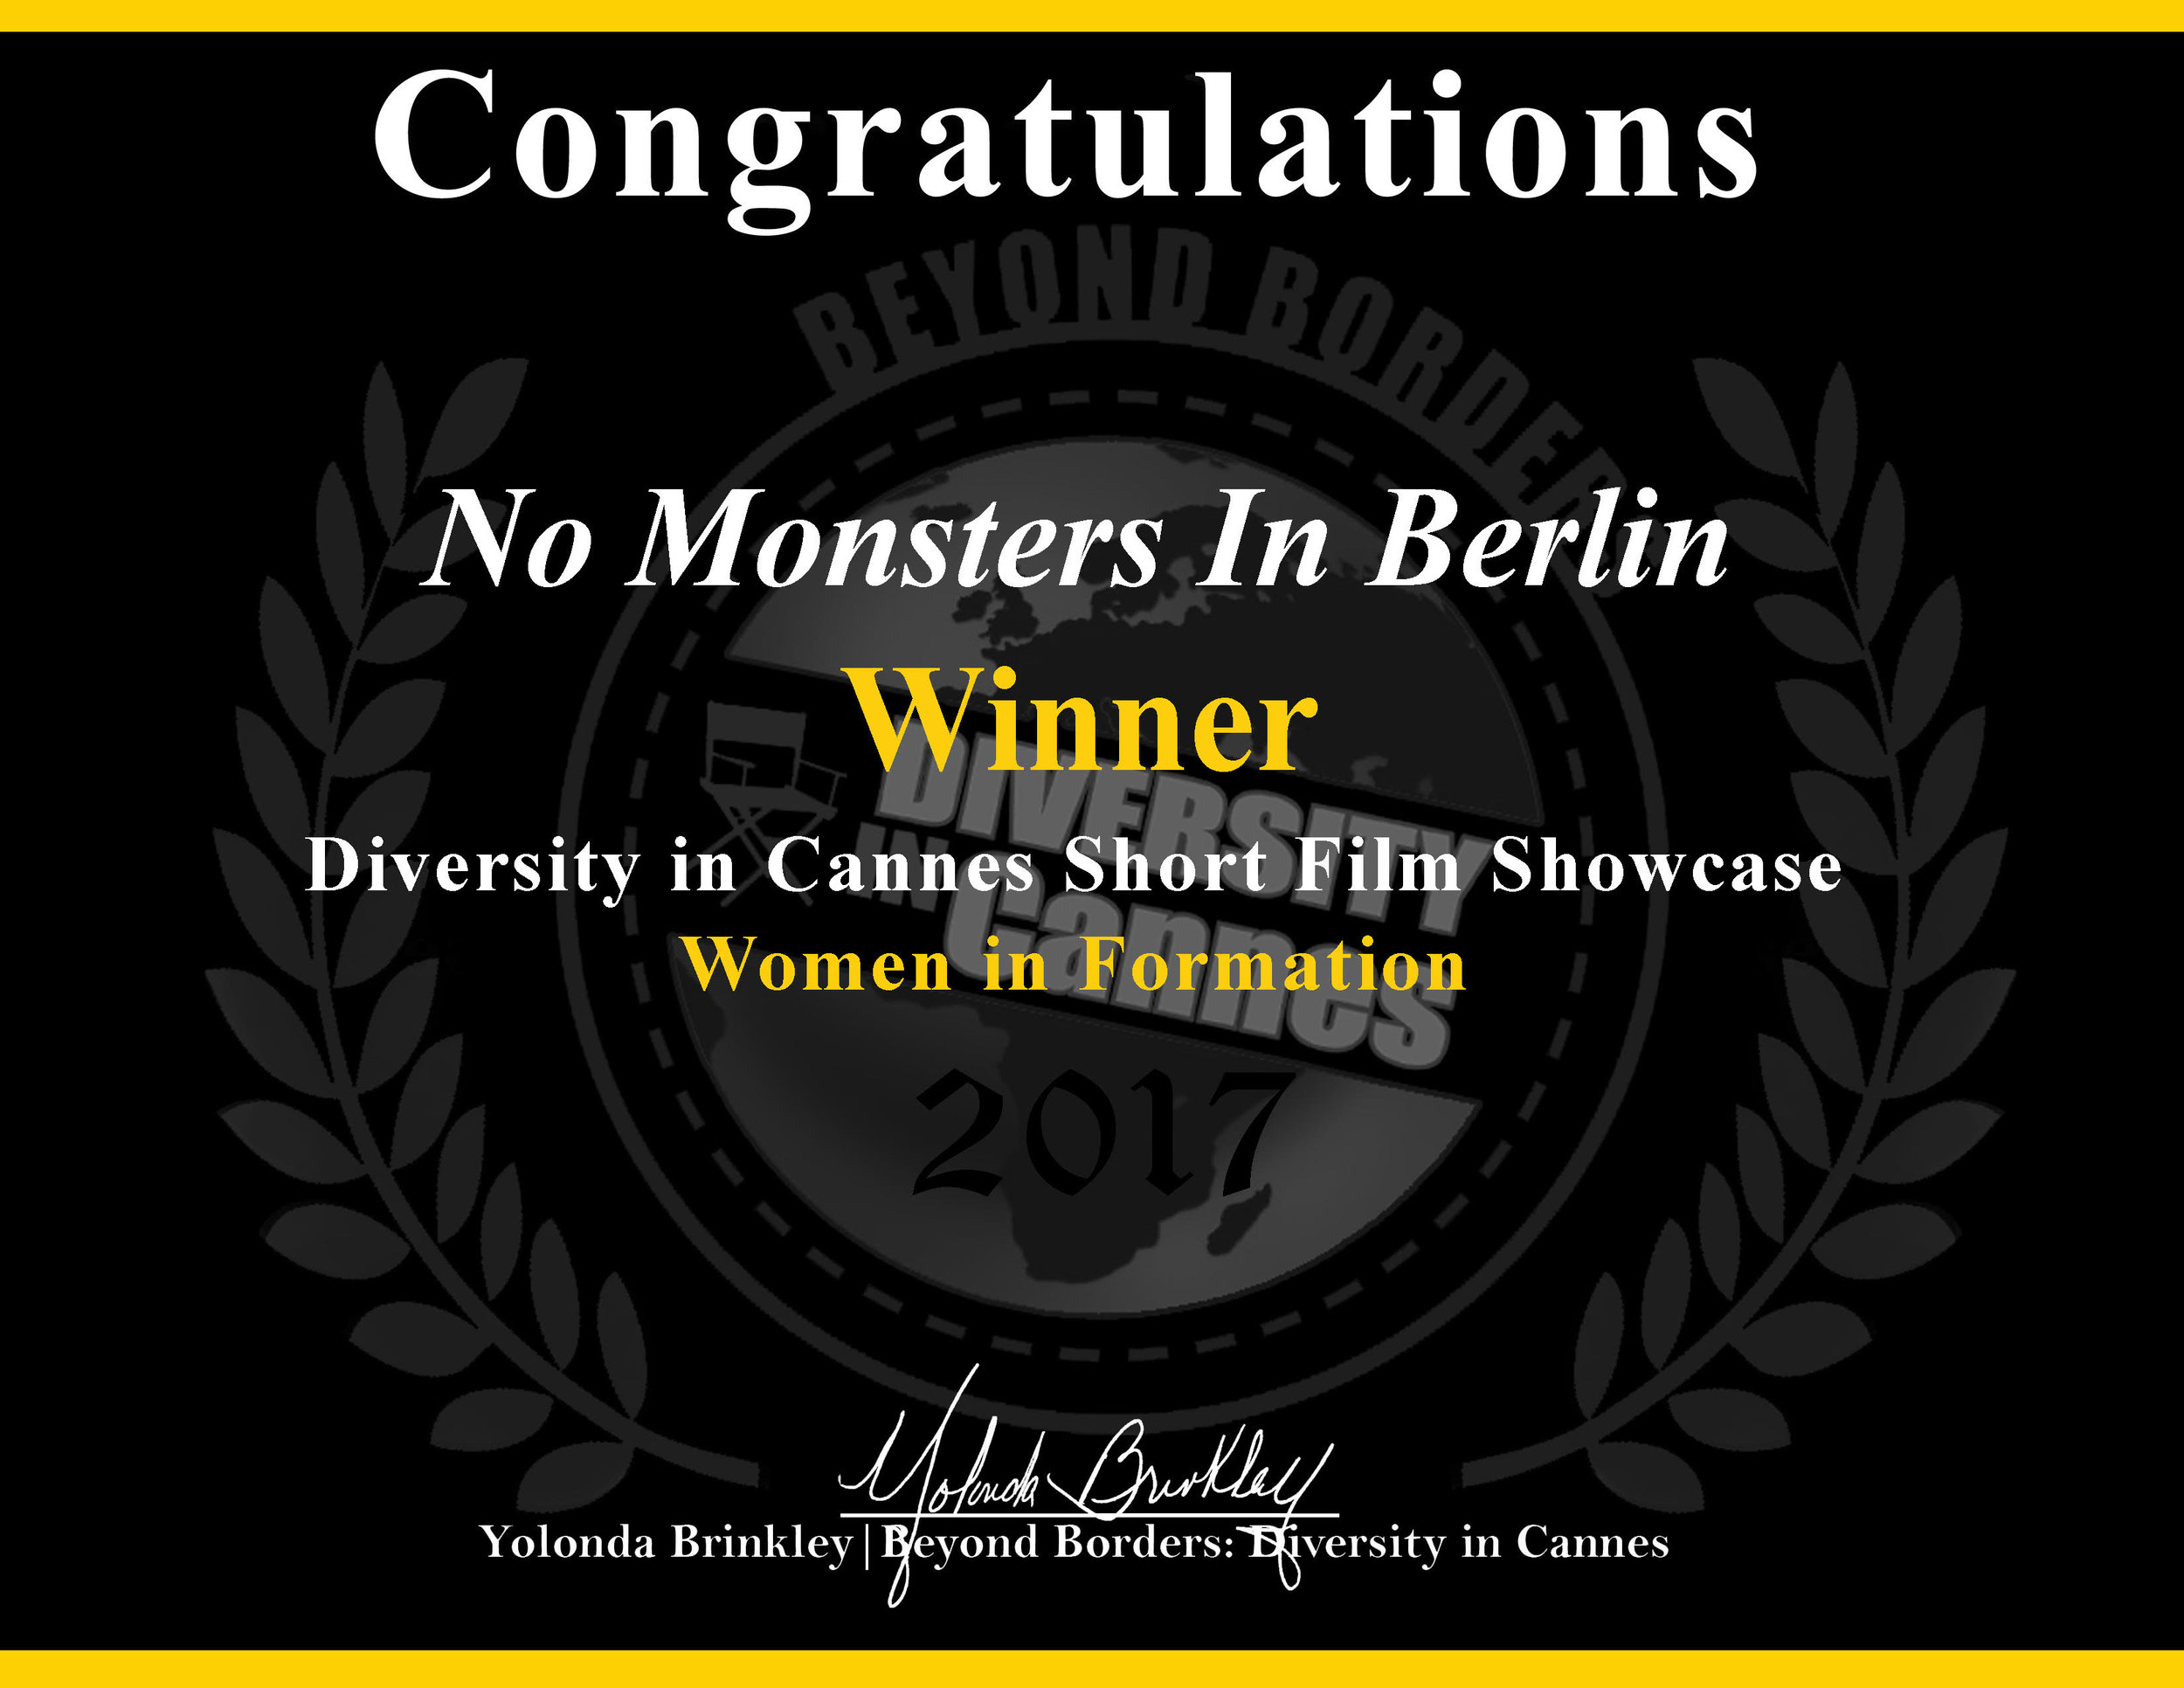 Diversity in Cannes winner certificate.jpg